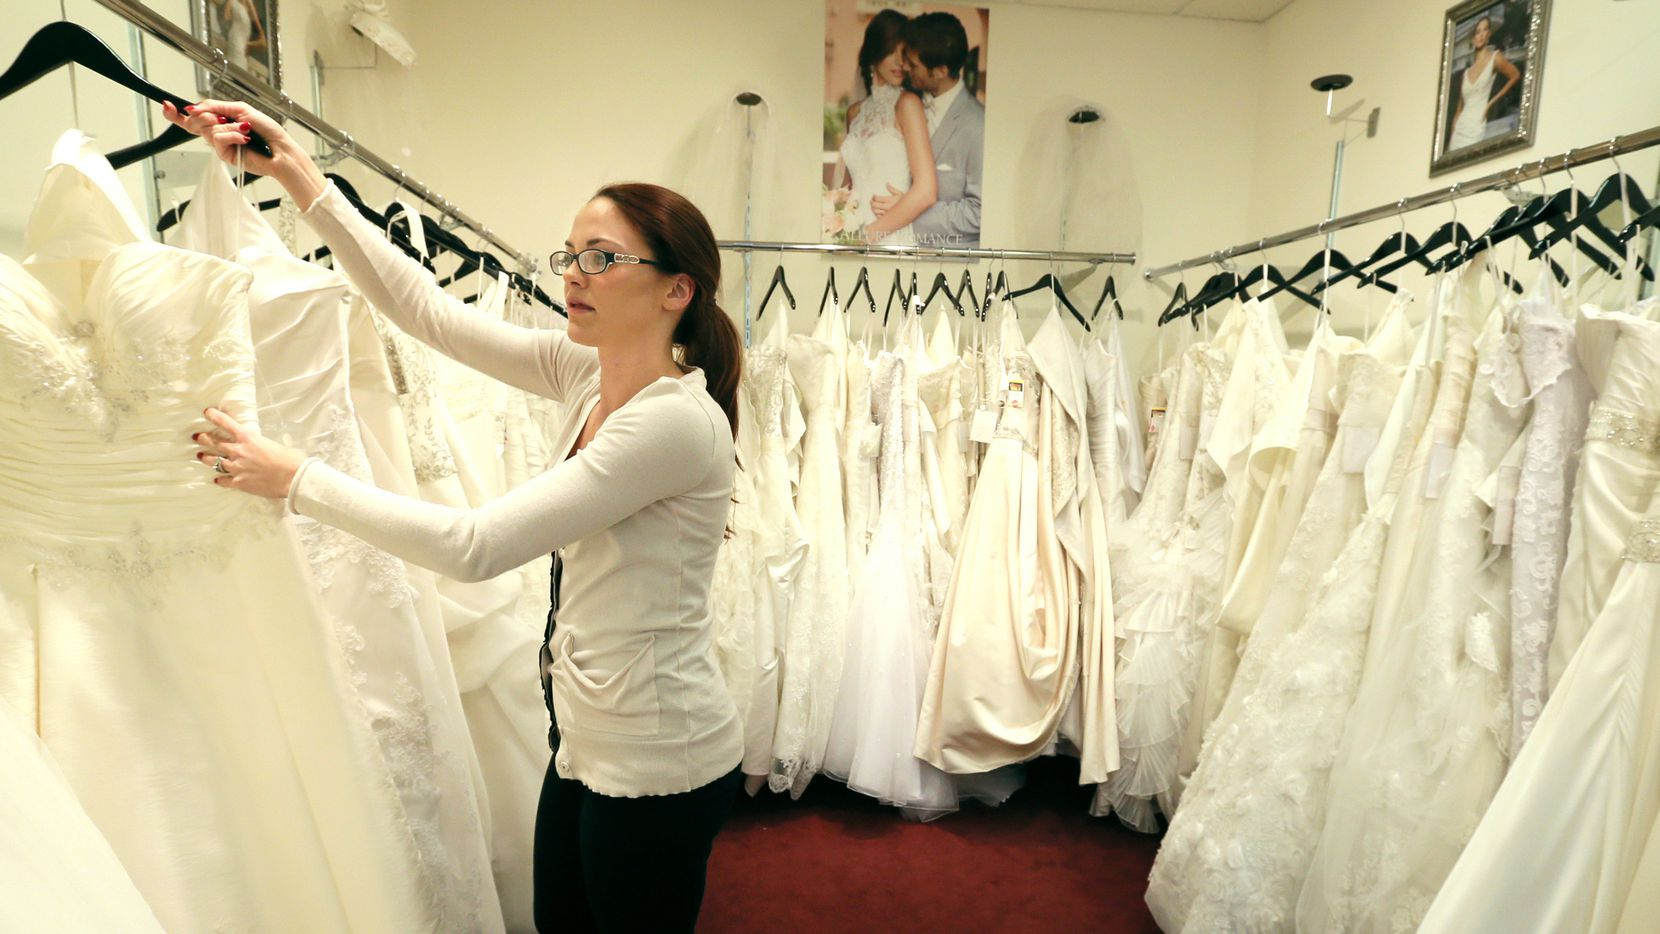 In this photo taken on Wednesday, Jan. 7, 2015, Coming Attractions Bridal & Formal Shop bridal consultant Danielle Snyder hangs a dress at the store in Akron, Ohio. Operators of the northeast Ohio bridal shop linked to an Ebola survivor say the store is closing because it lost significant business and has been stigmatized.  (AP Photo/Akron Beacon Journal, Phil Masturzo )  MANDATORY CREDIT